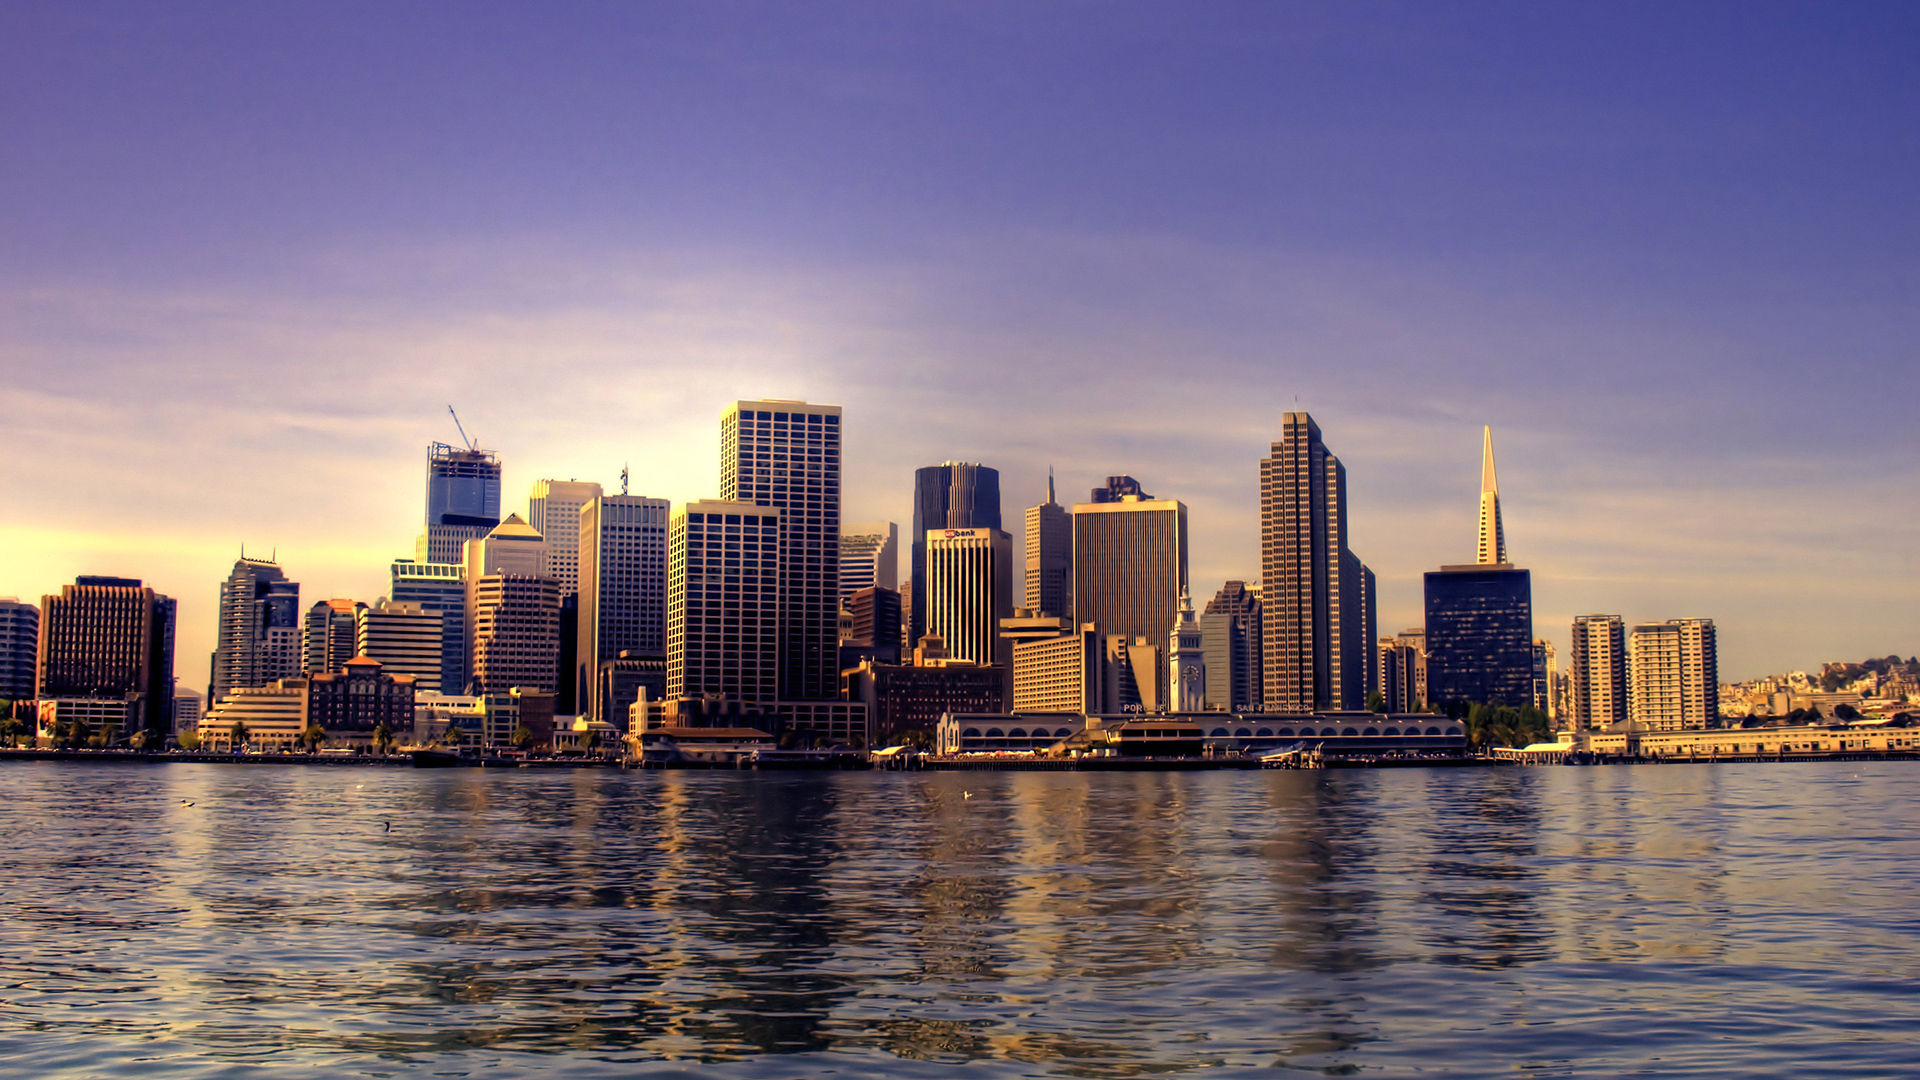 City by the Bay Wallpapers 1920x1080